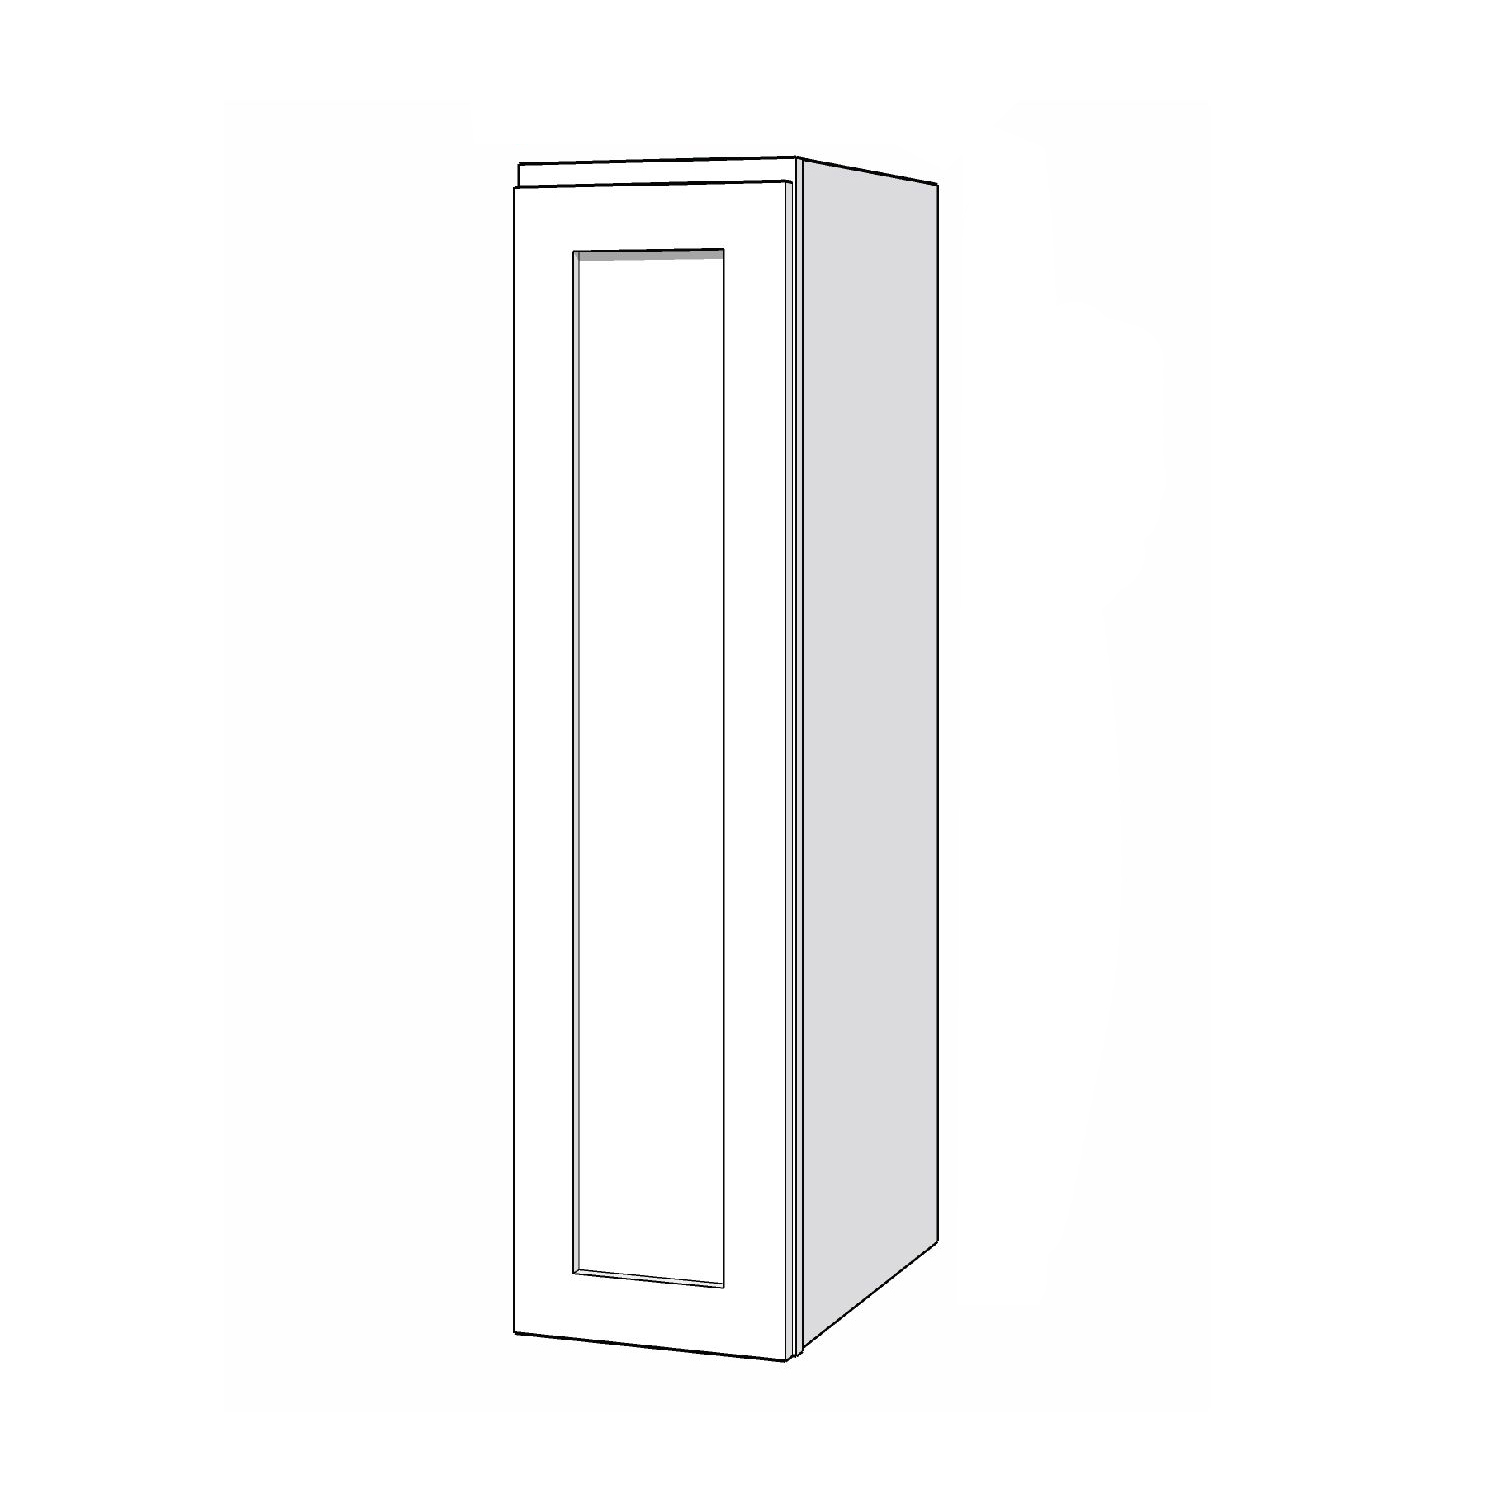 Wall Cabinet - 9in. x 36in. - White